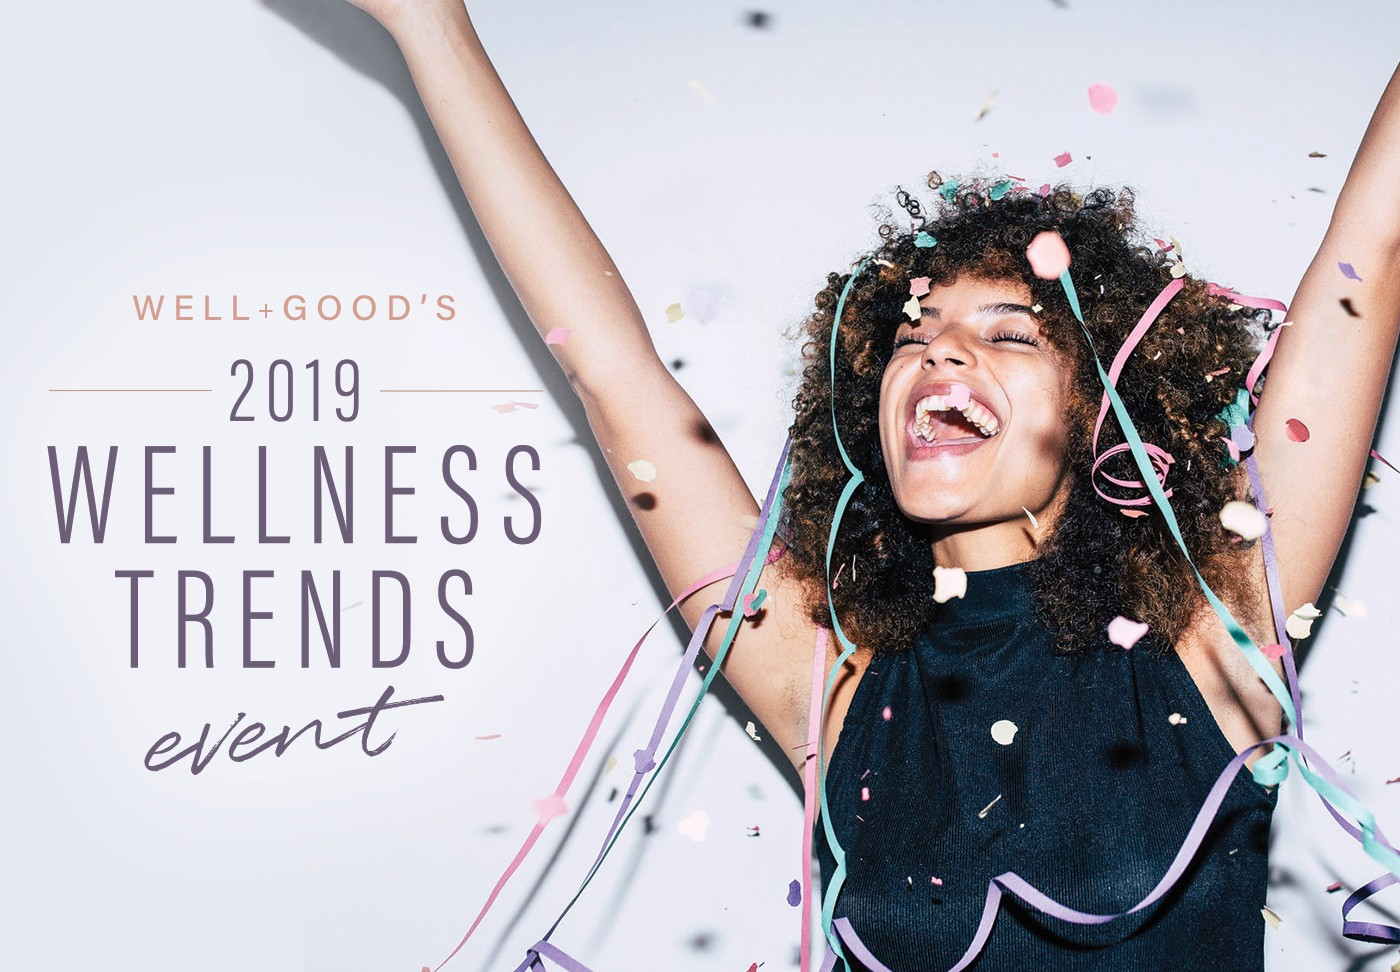 Thumbnail for YOU'RE INVITED TO THE REVEAL OF WELL+GOOD'S 2019 WELLNESS TRENDS